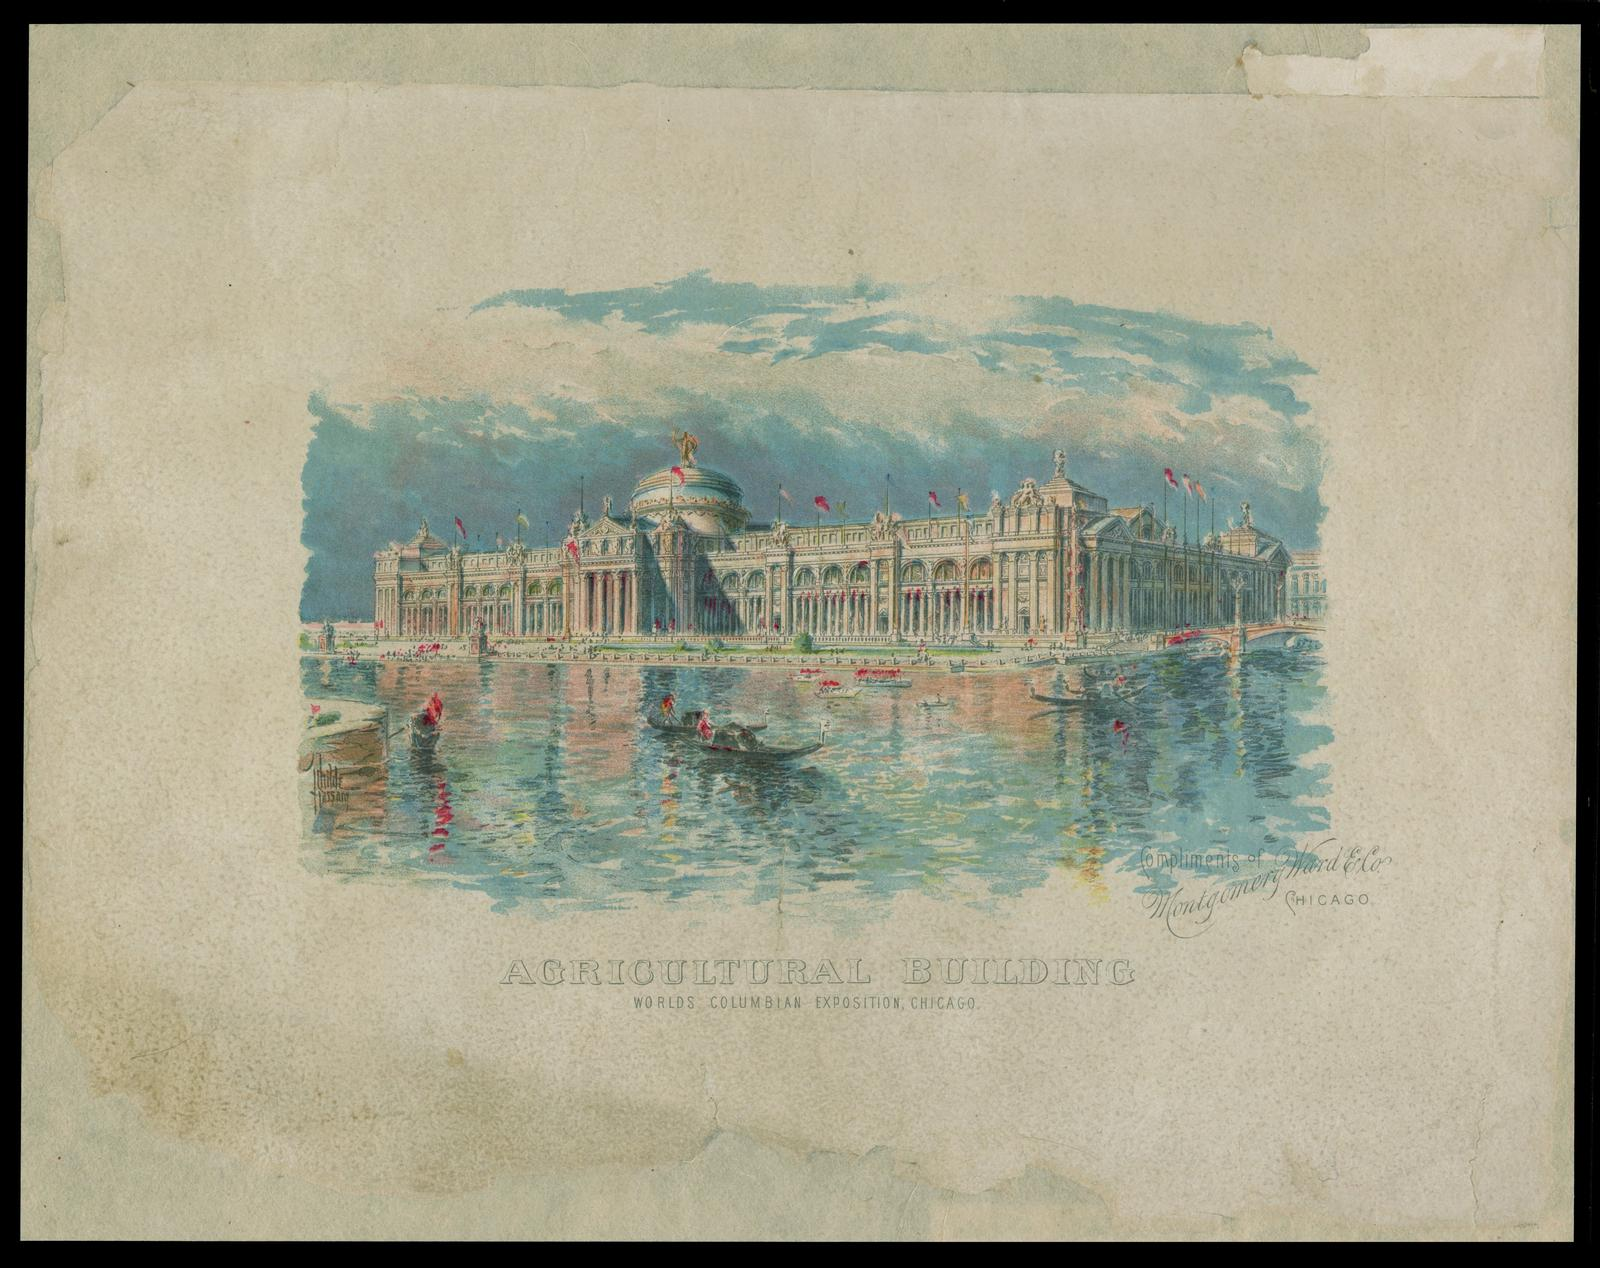 Agricultural building: Worlds Columbian Exposition, Chicago